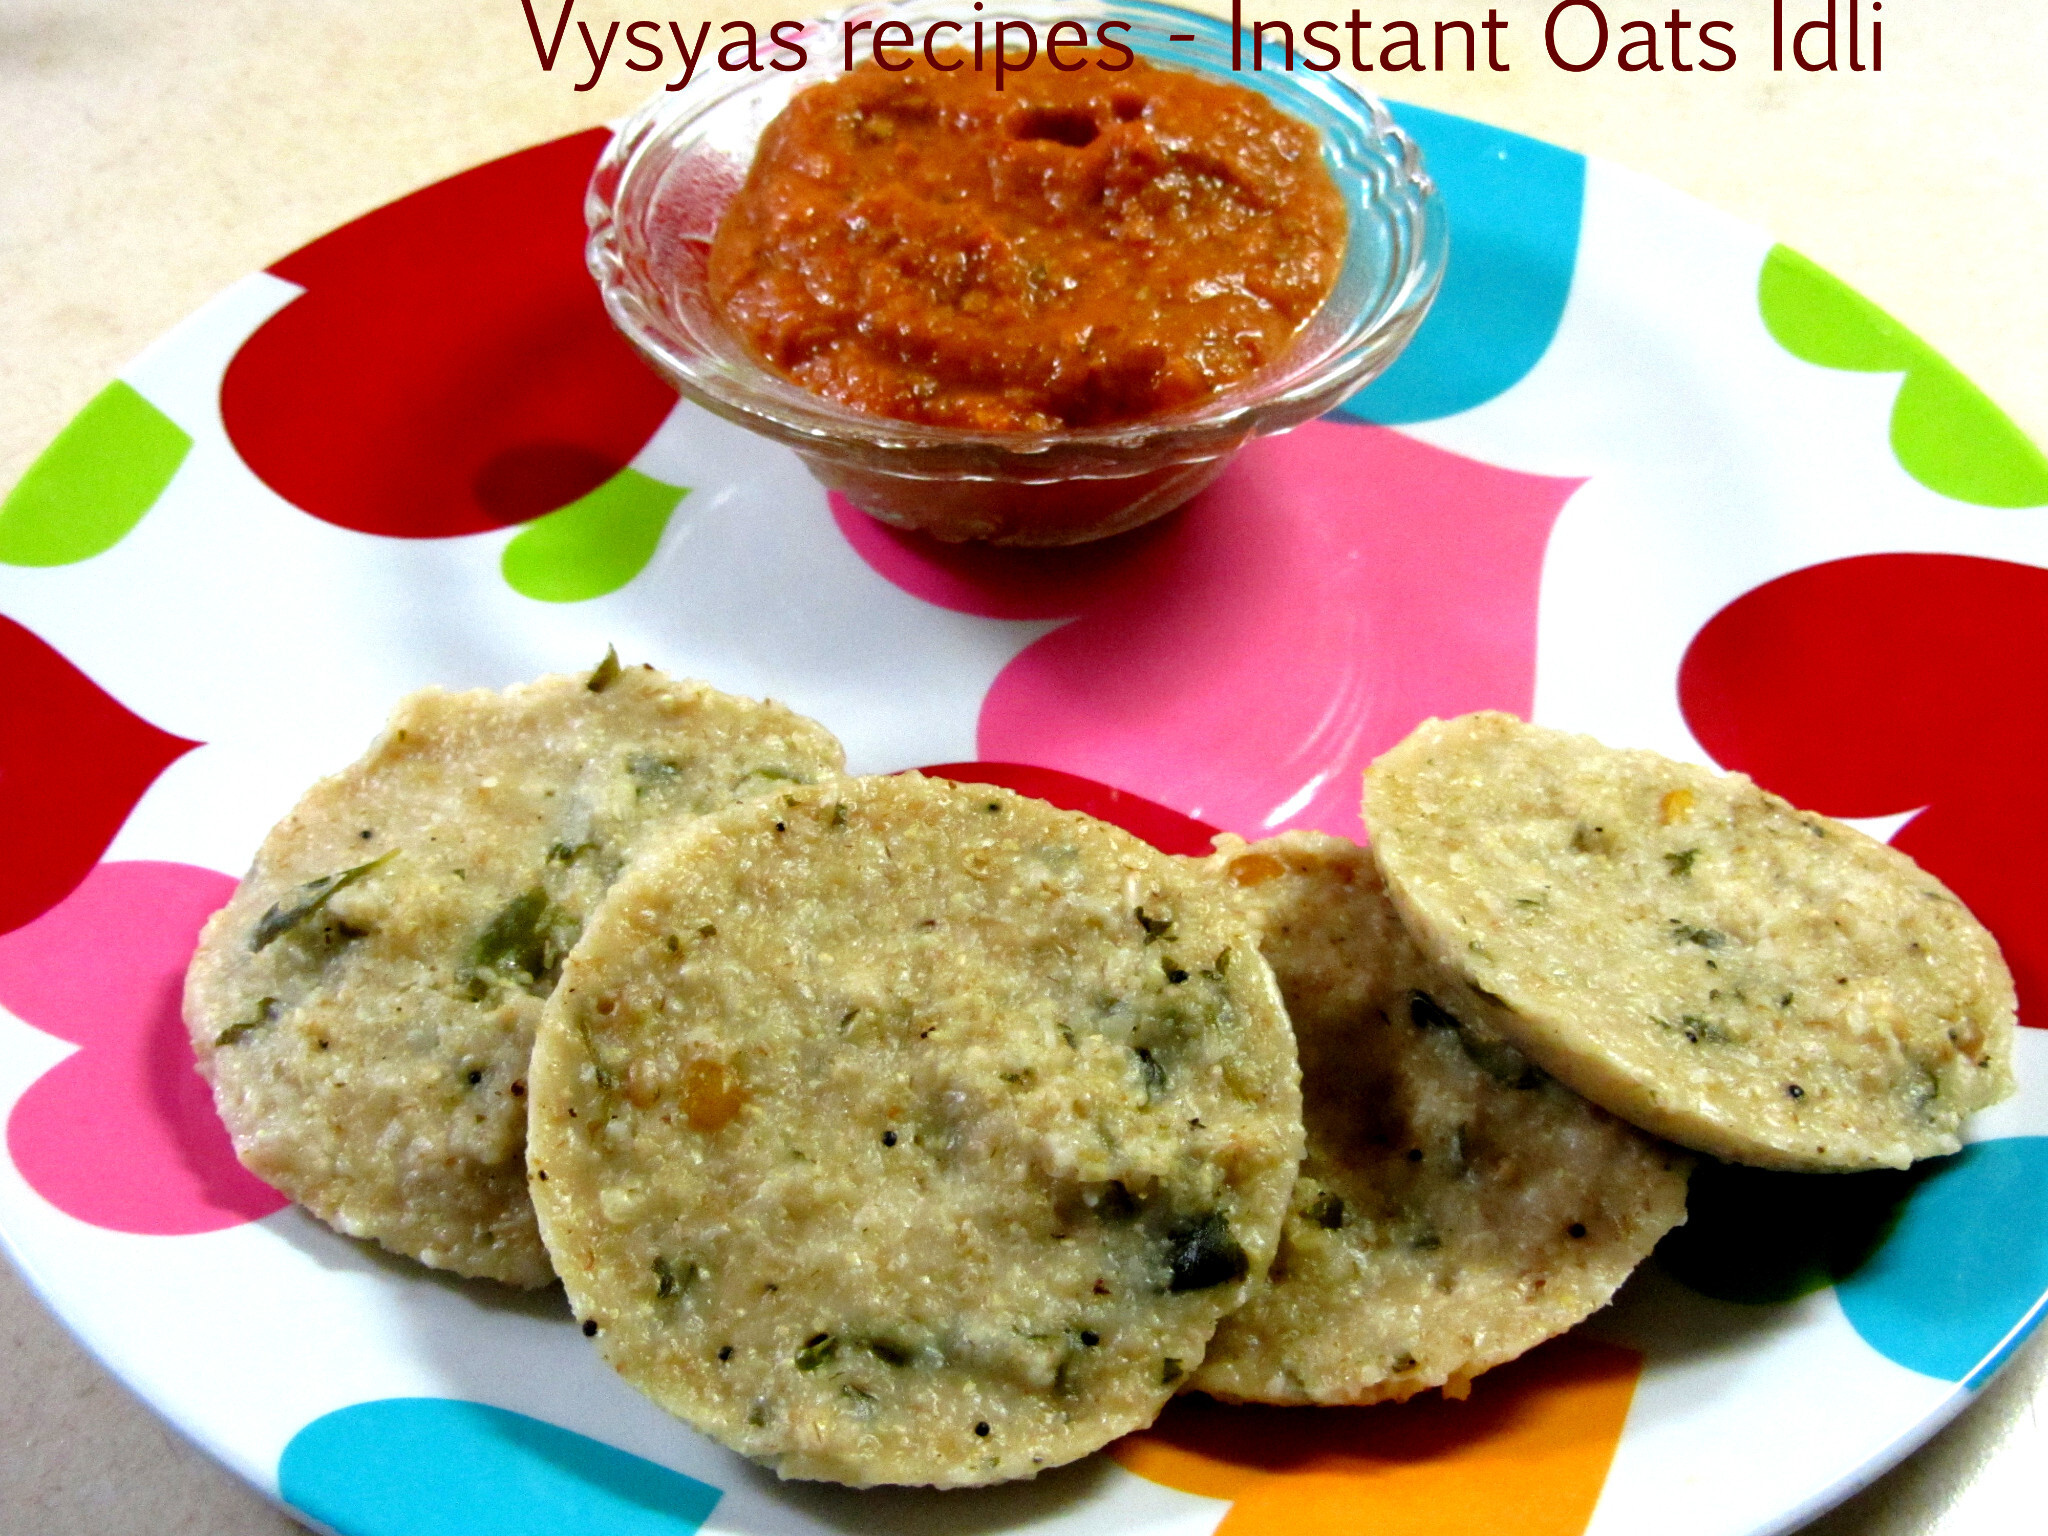 Instant Oats Idli - Oats idli using Wheat Rava - Oats Recipes - Oats Idli